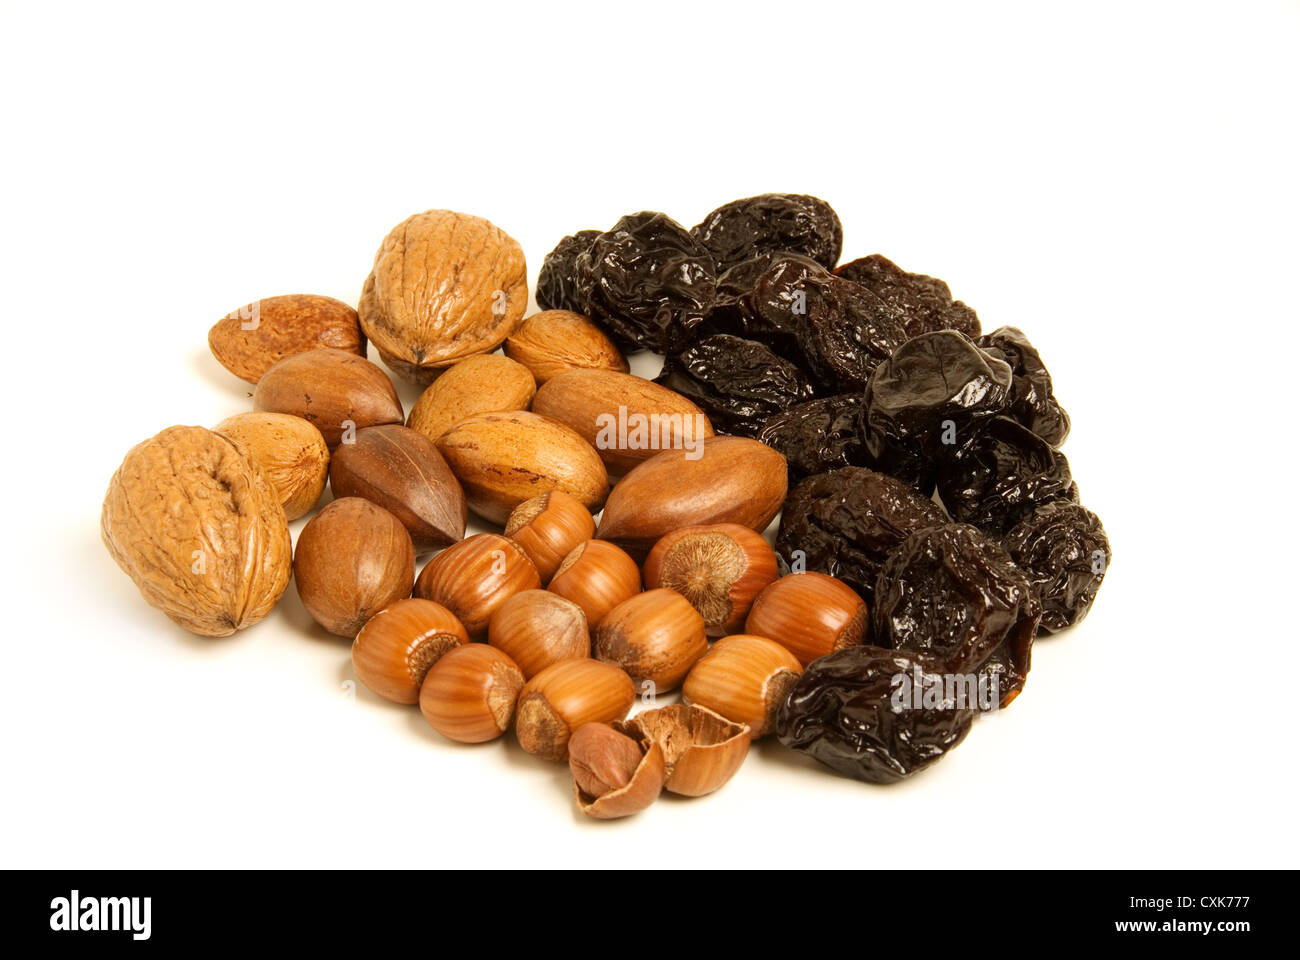 Dried prunes and nuts isolated, healthy food concept. - Stock Image